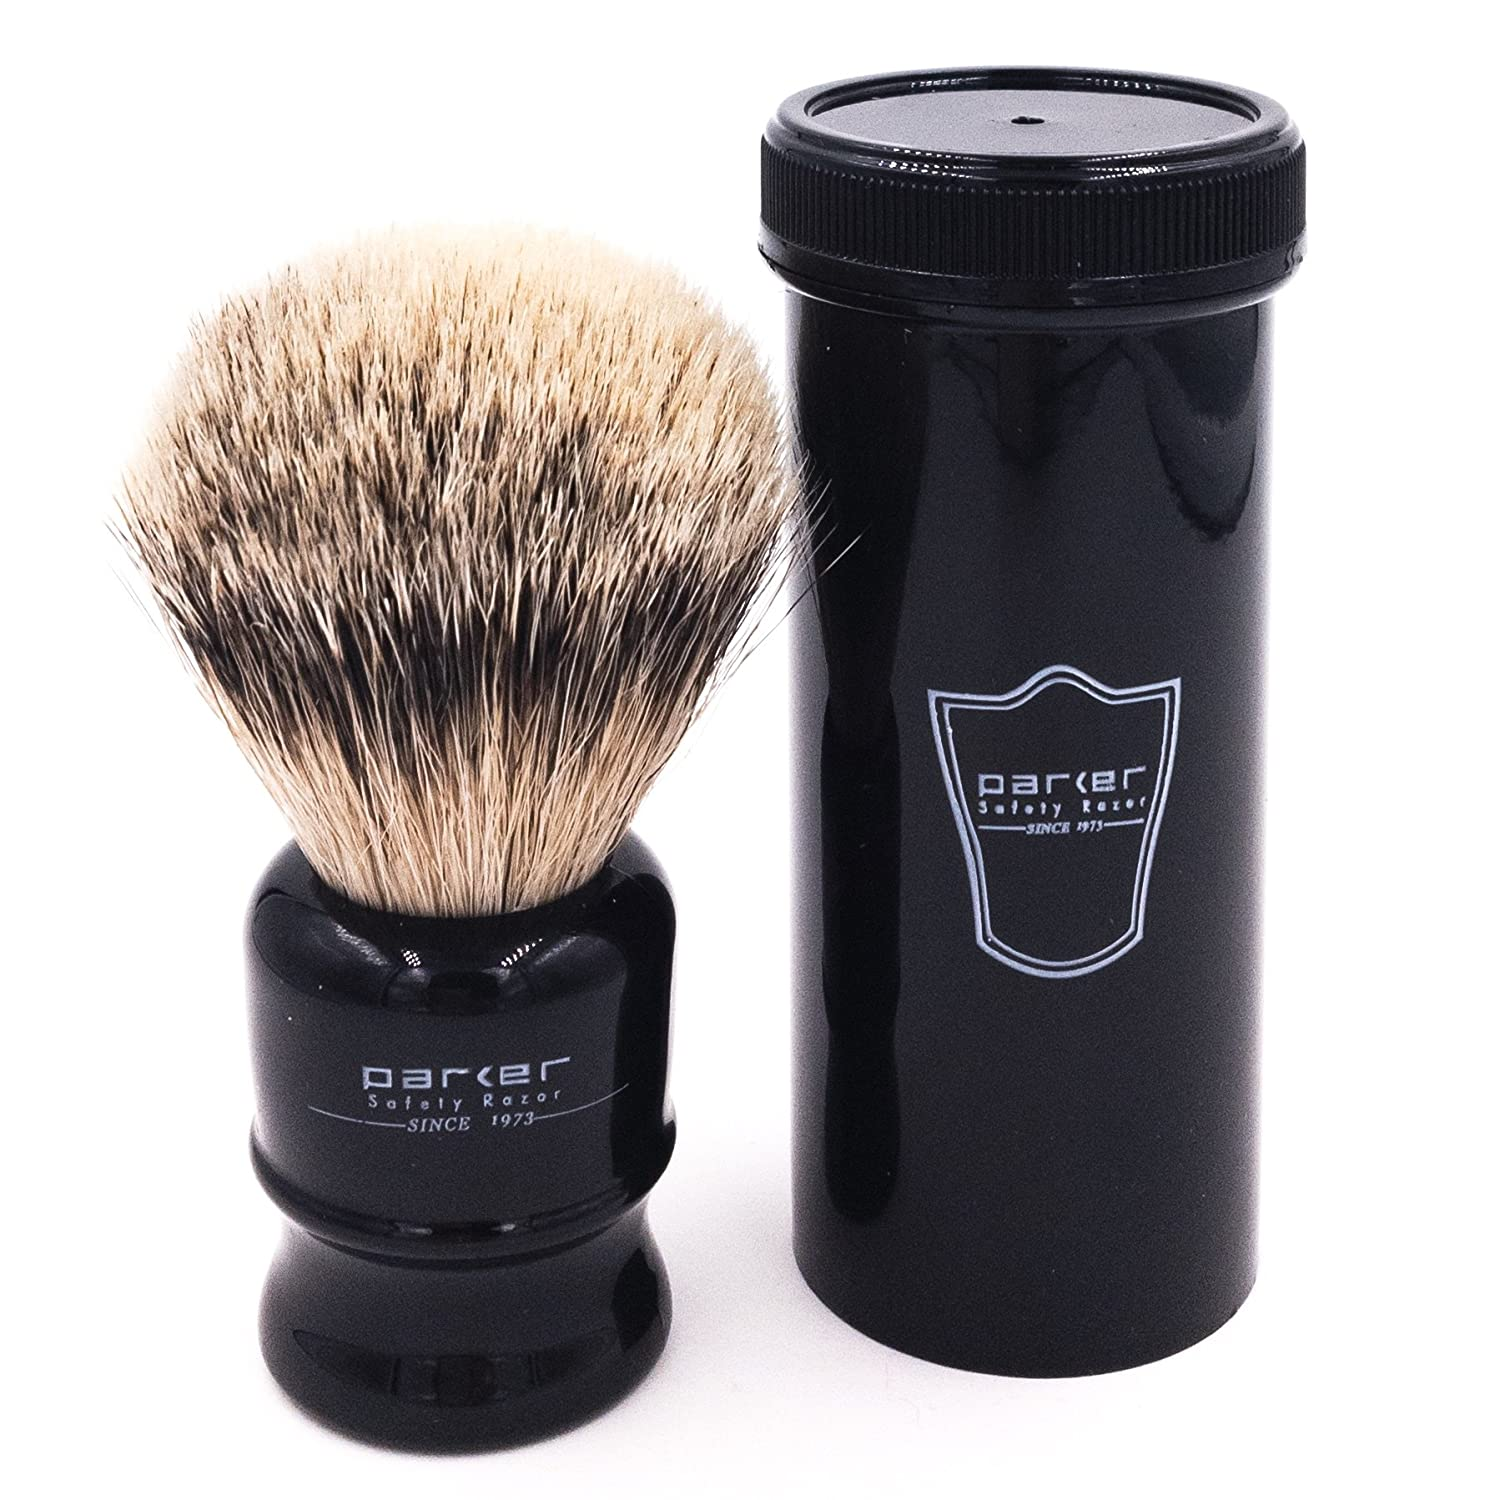 Parker Safety Razor 100% Silvertip Travel Shave Brush - Black Handle